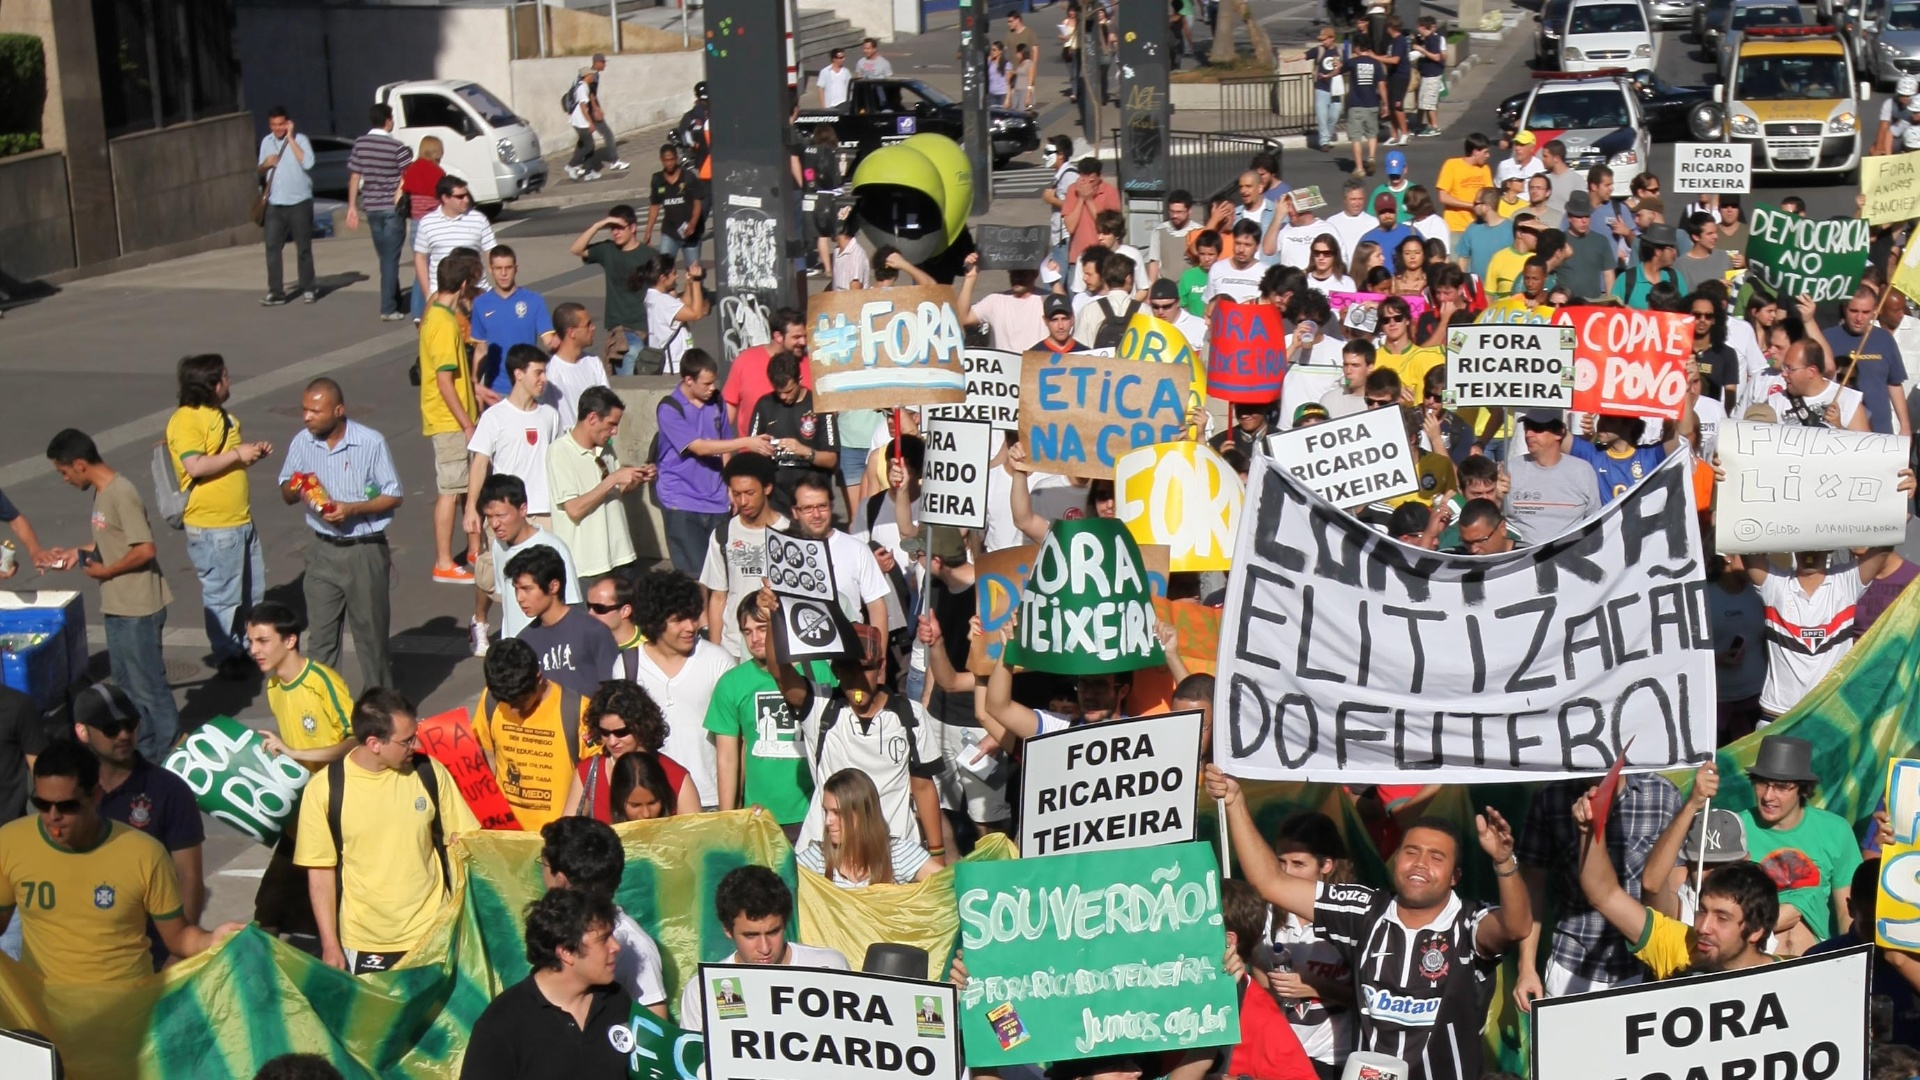 Manifestantes tomam um trecho da Avenida Paulista na marcha contra Ricardo Teixeira em So Paulo (13/08/2011)